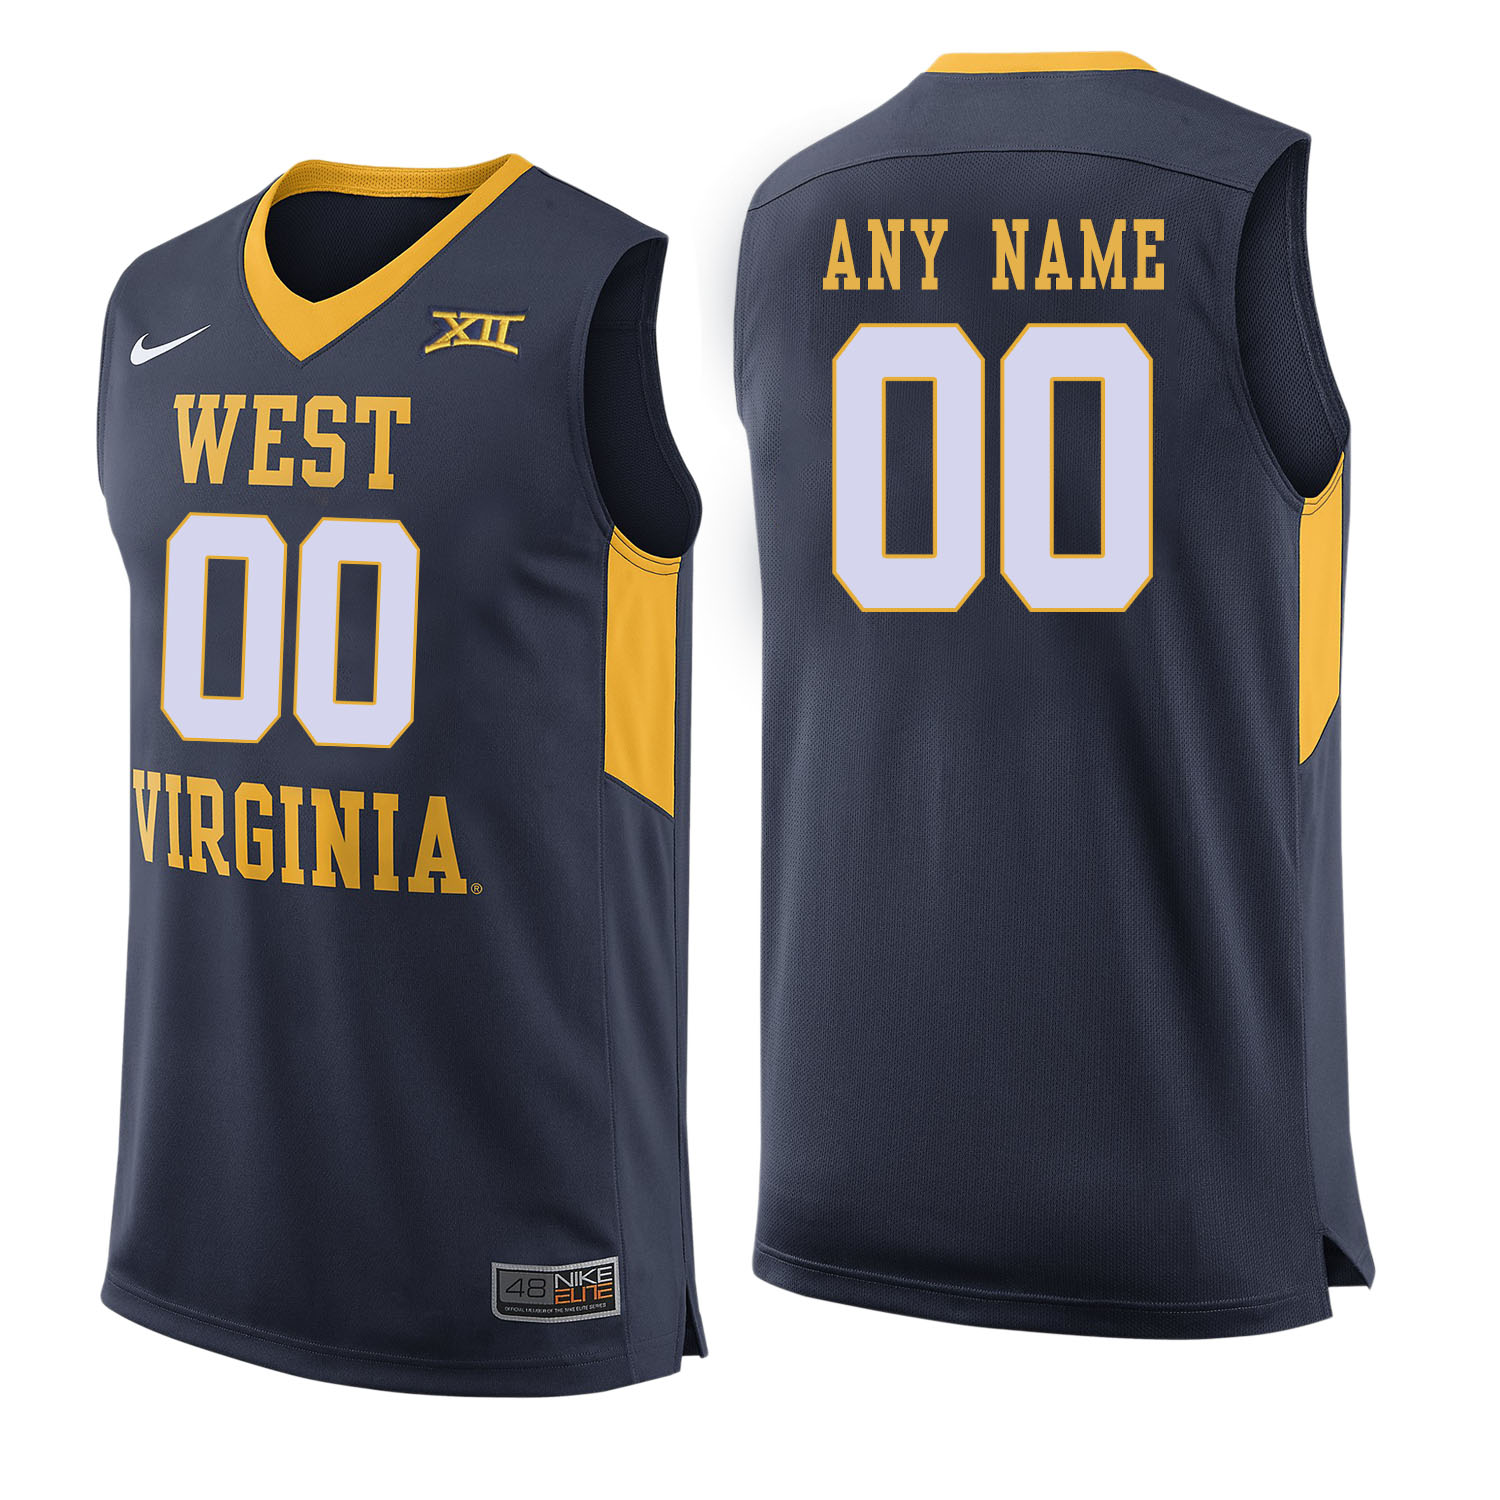 West Virginia Mountaineers Navy Men's Customized College Basketball Jersey